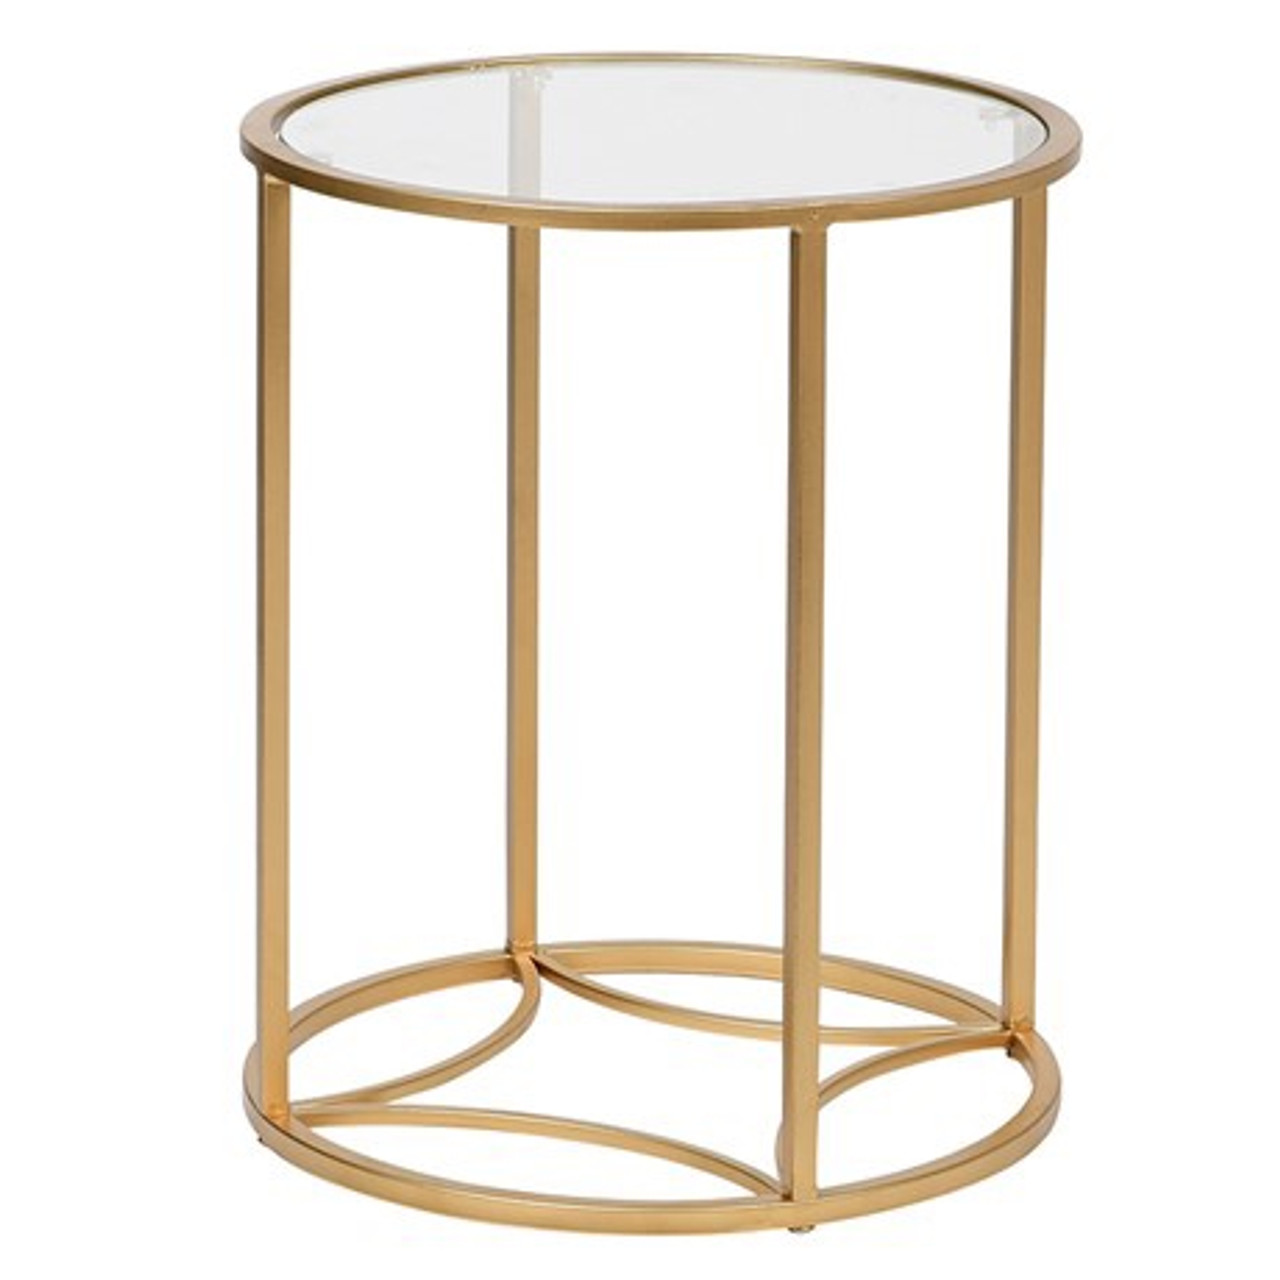 Round Gold Metal Side Table Little White Box